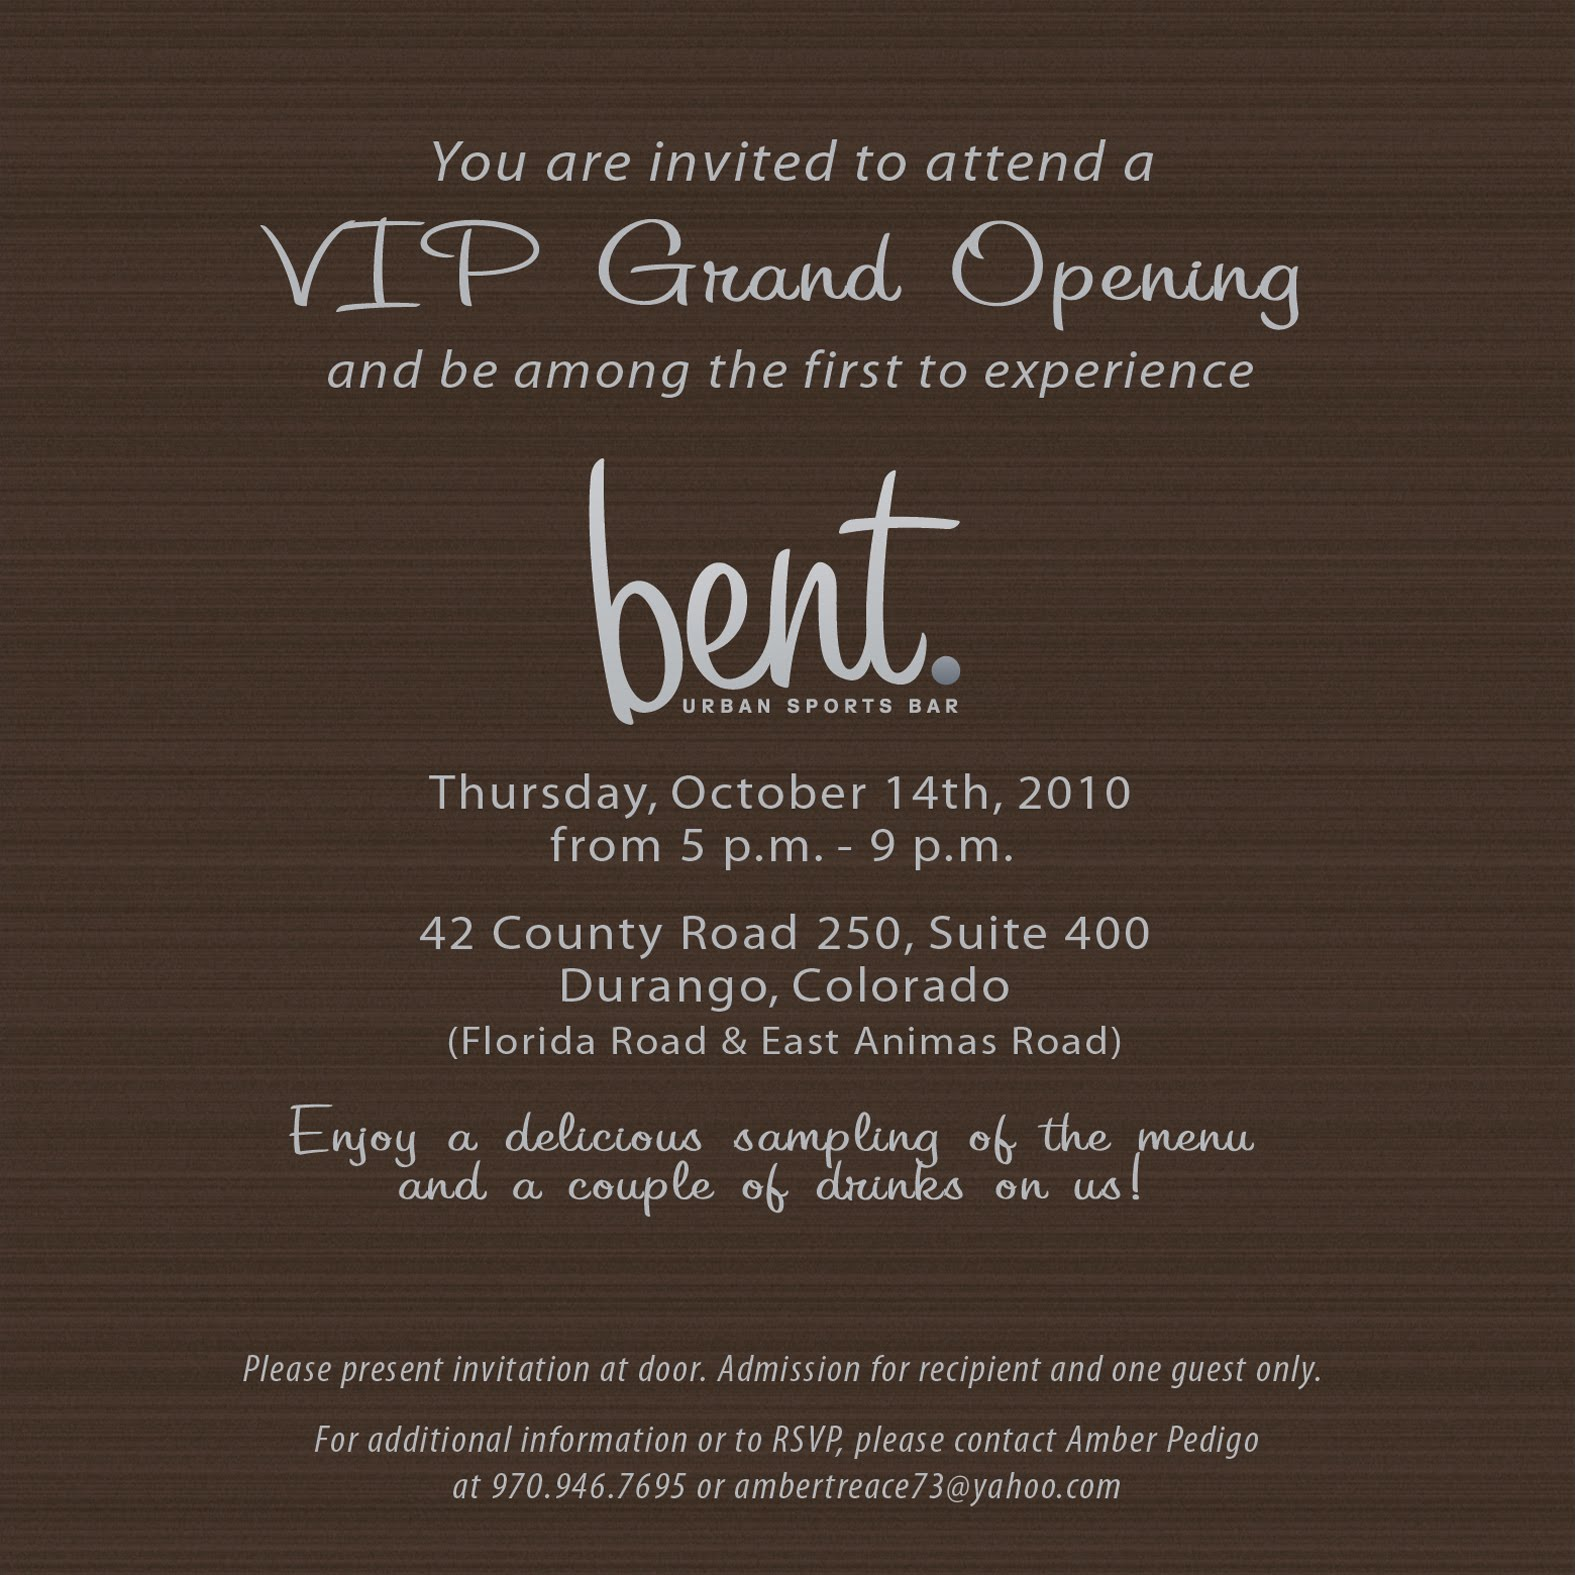 Restaurant Grand Opening Invitation Wording Best Custom